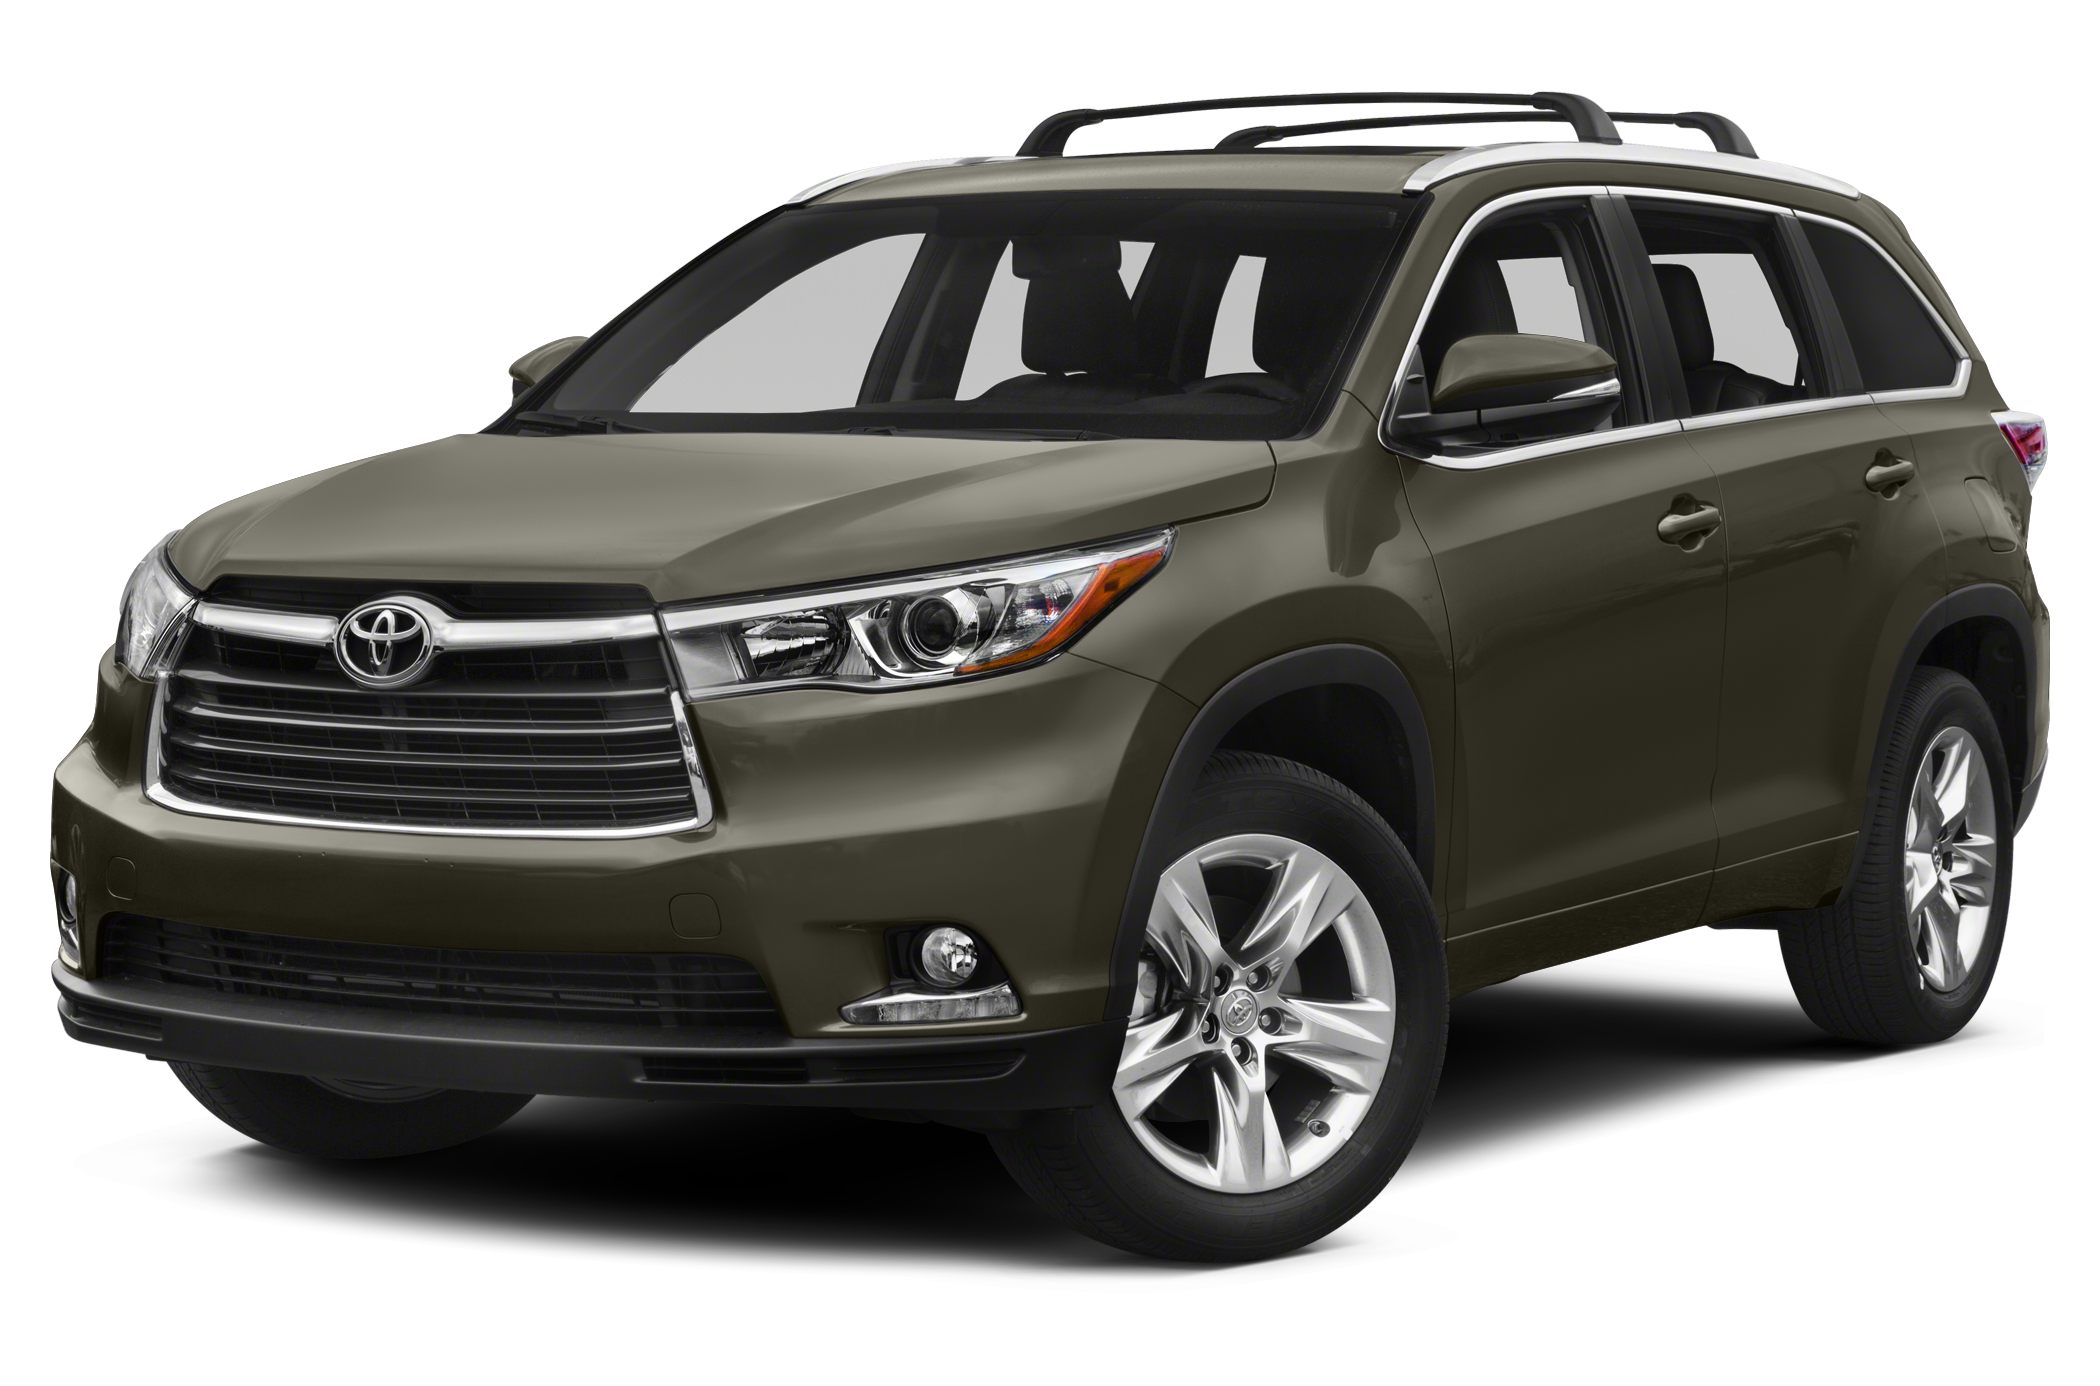 2014 Toyota Highlander  Snatch a steal on this 2014 Toyota Highlander before someone else snatches